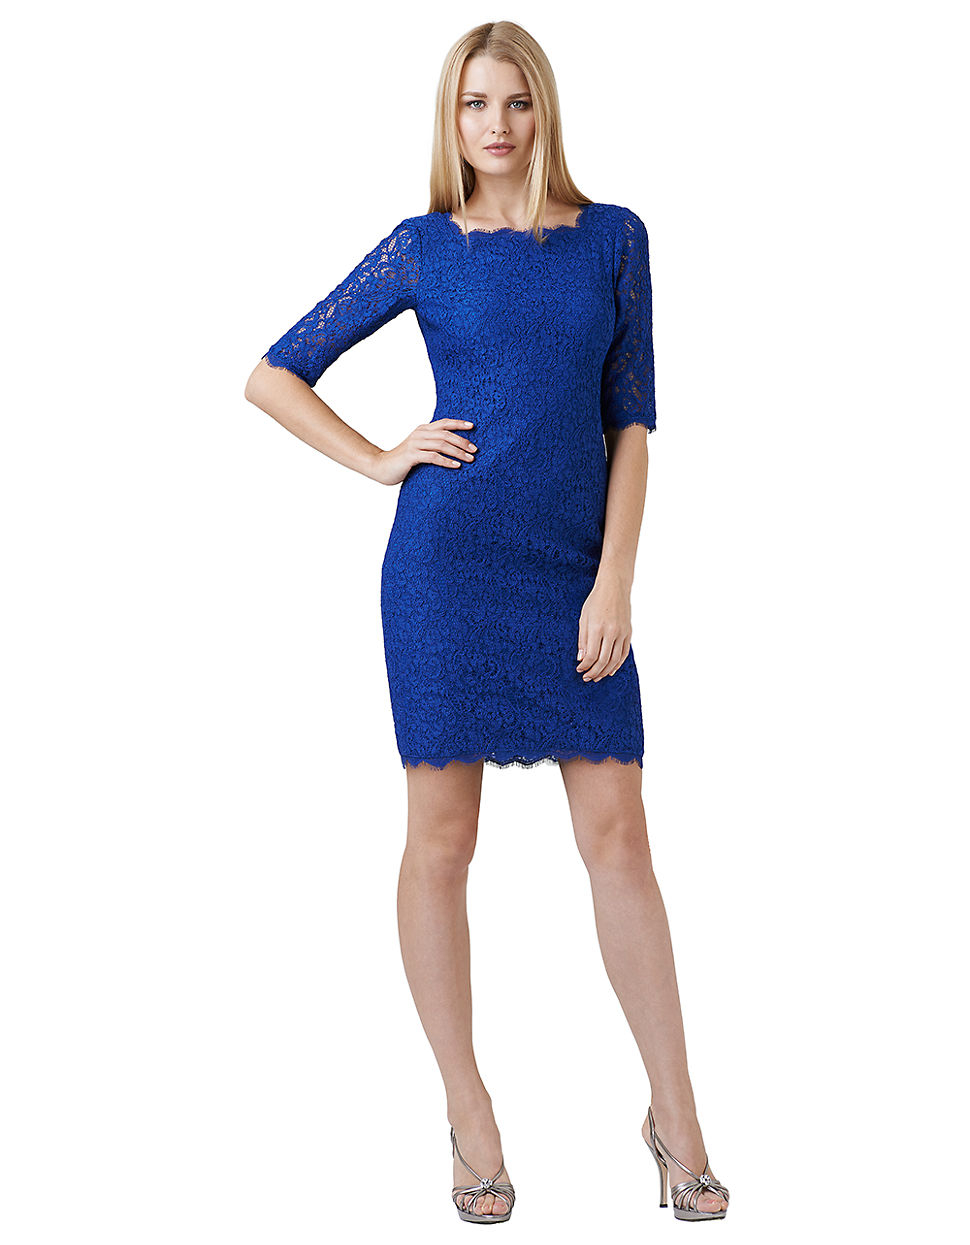 Lyst - Adrianna Papell Lace Cocktail Dress in Blue